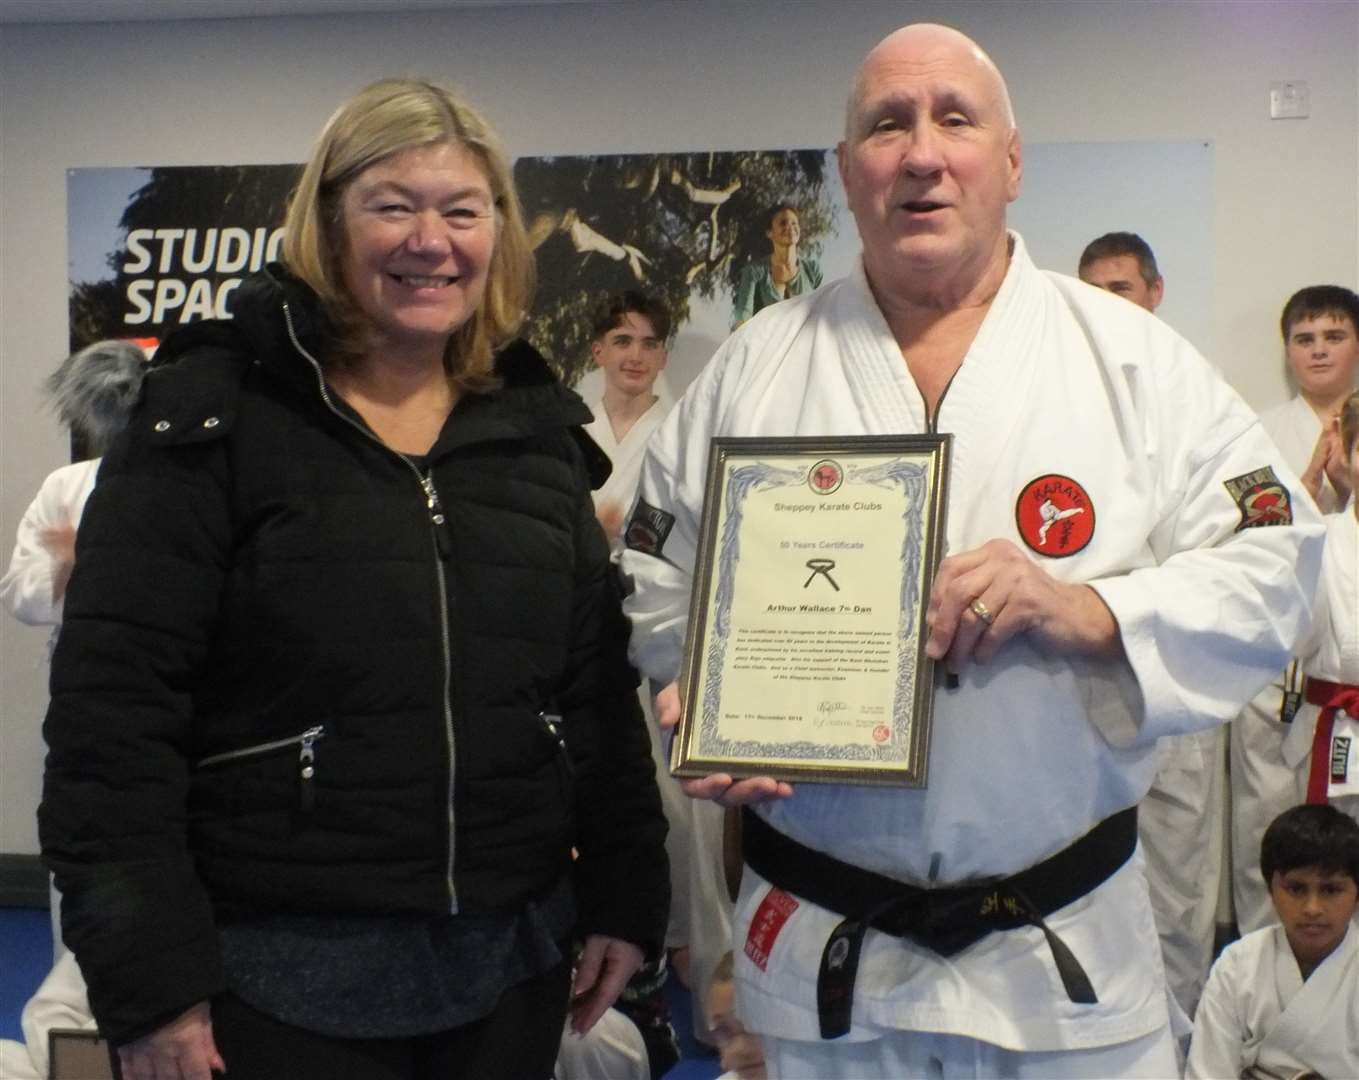 Sheppey Karate Club boss Arthur Wallace gets his 50-year certificate